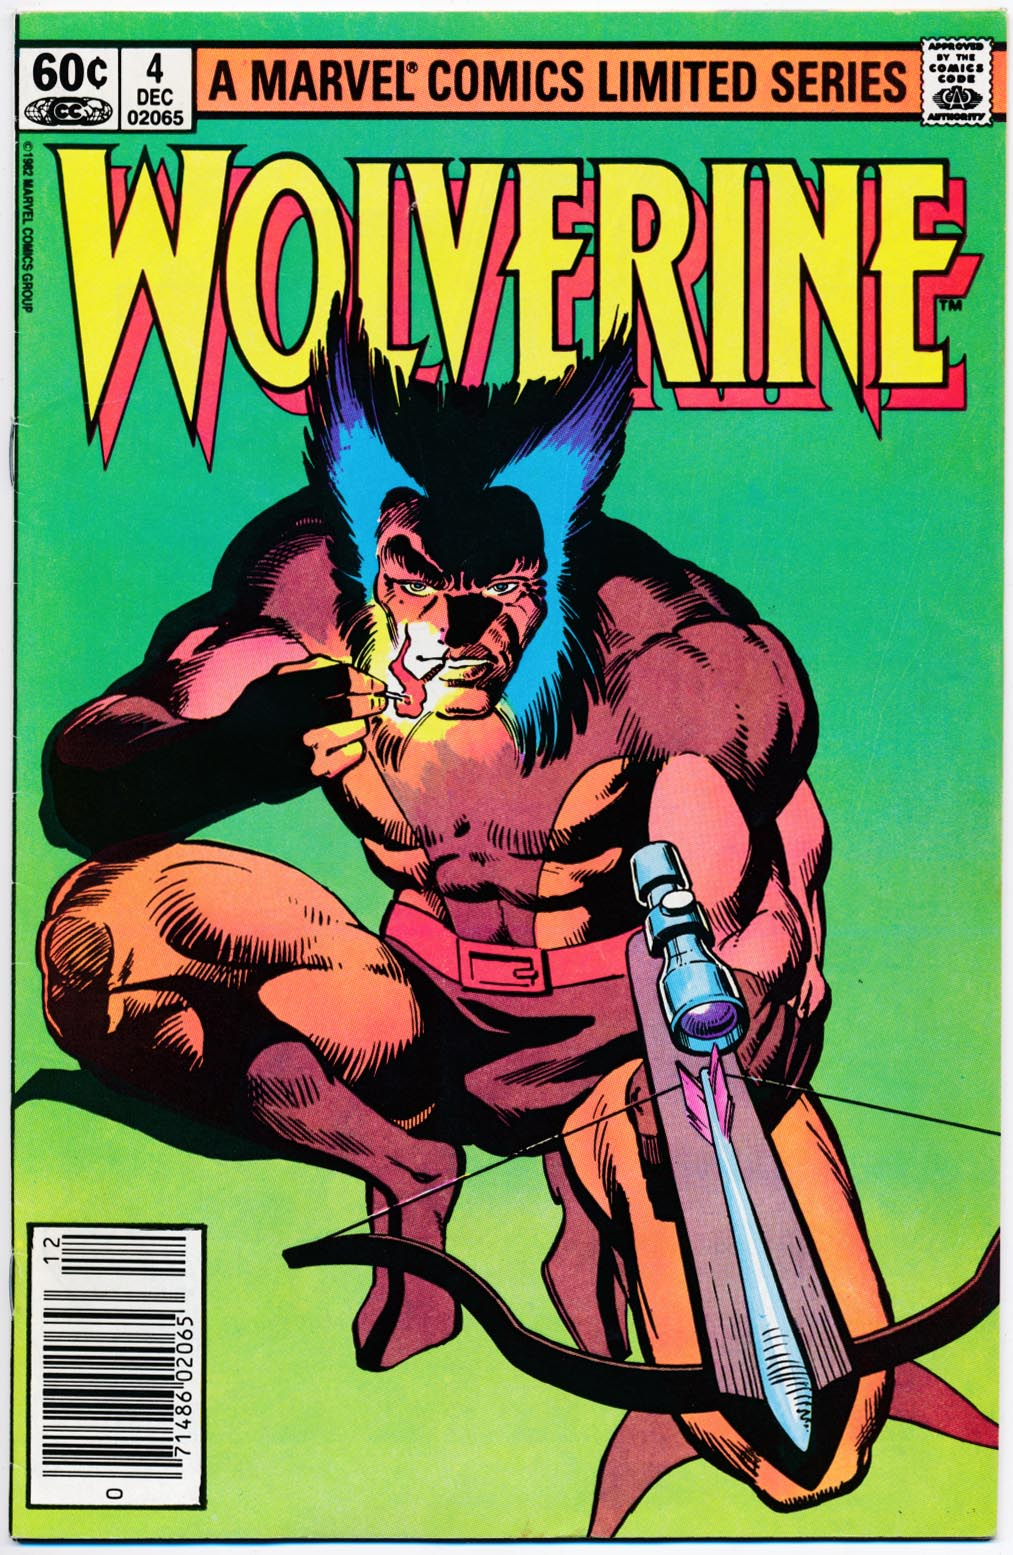 Wolverine vol 1 - 4 (of 4 ) (Newstand) -VF